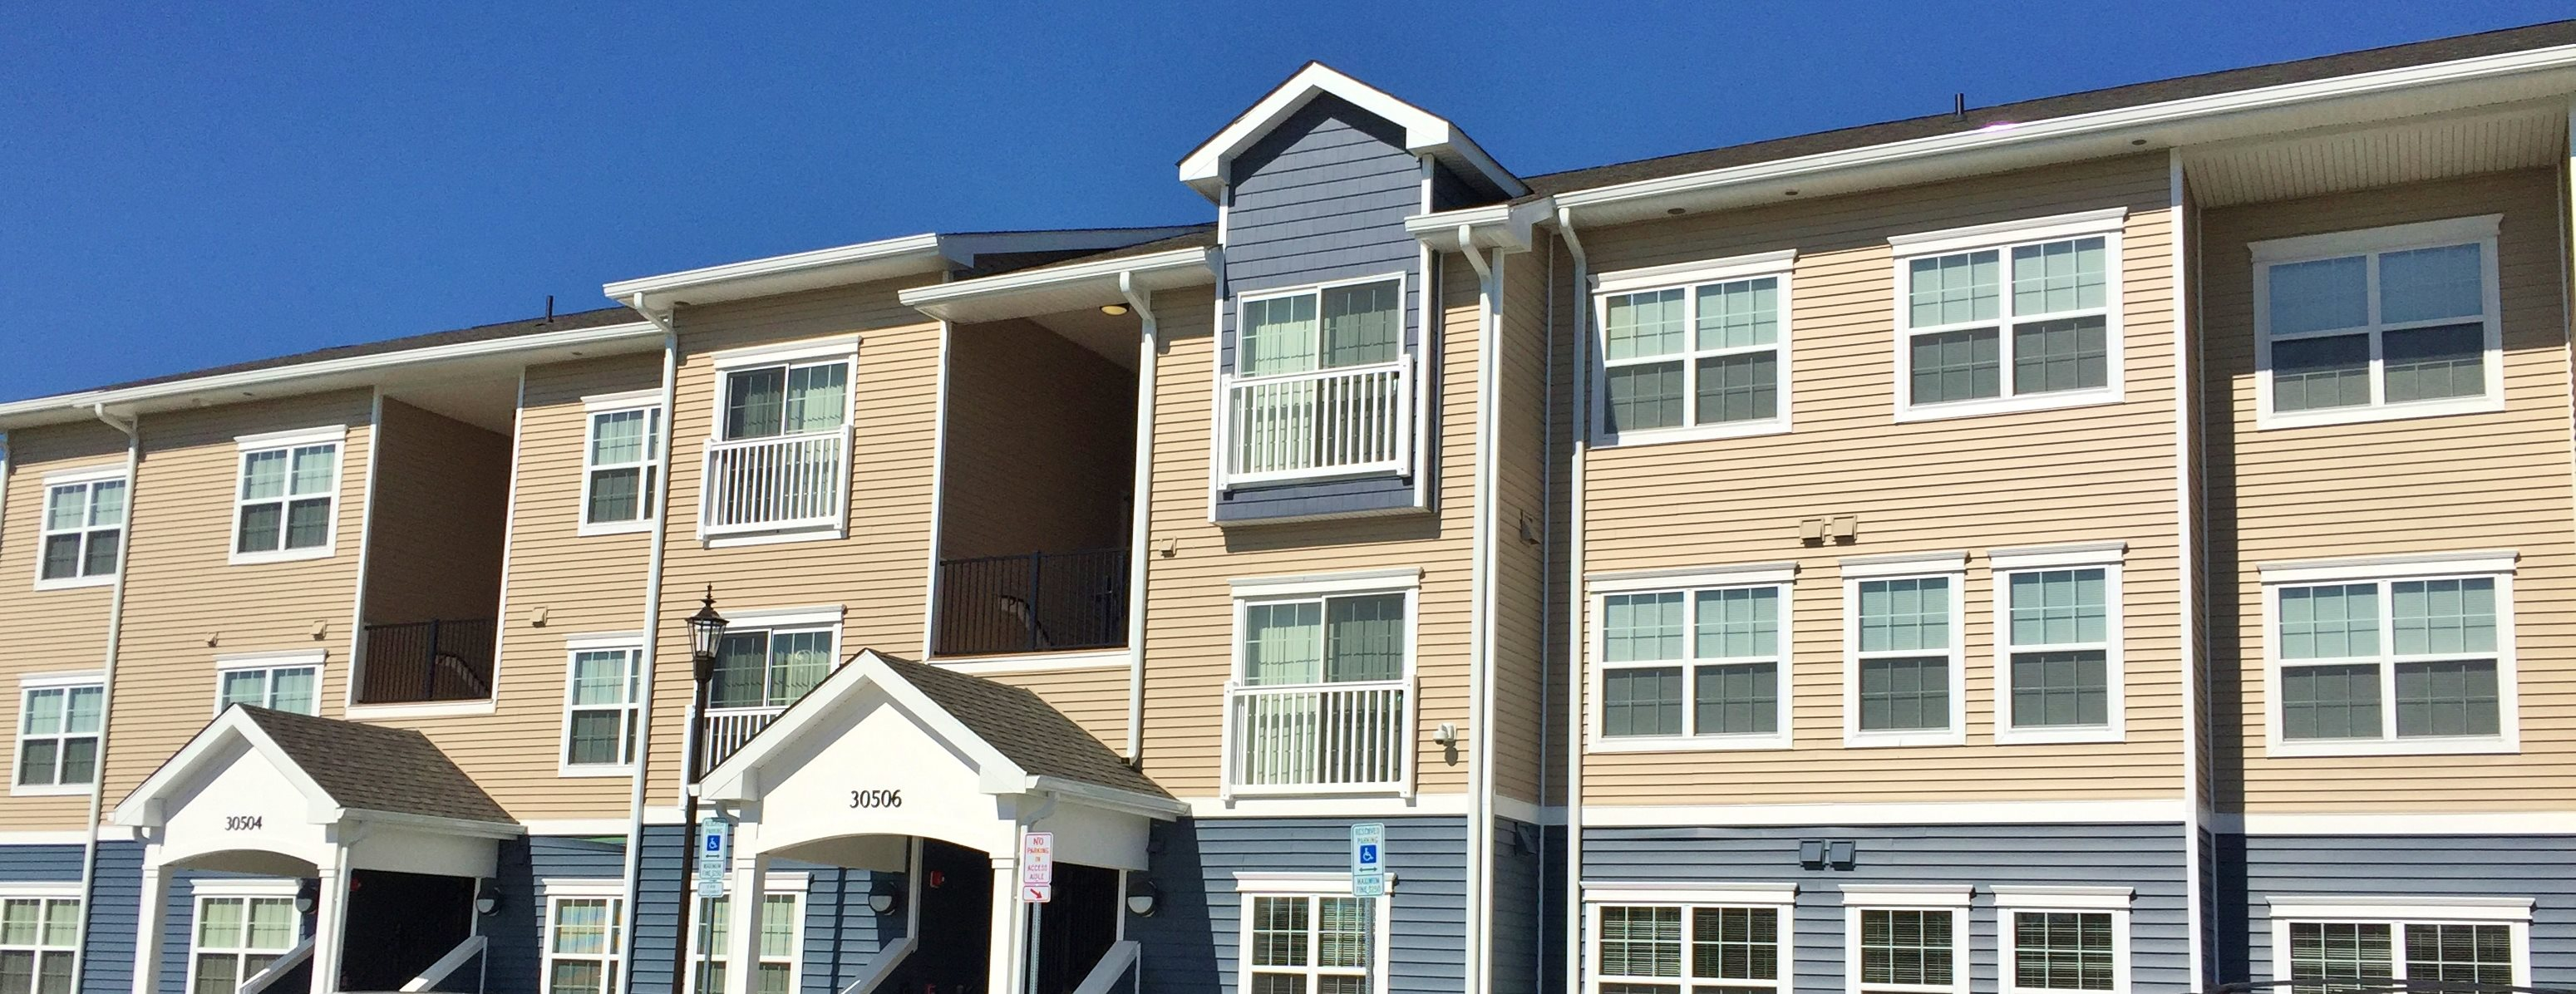 Apartments In Princess Anne Md